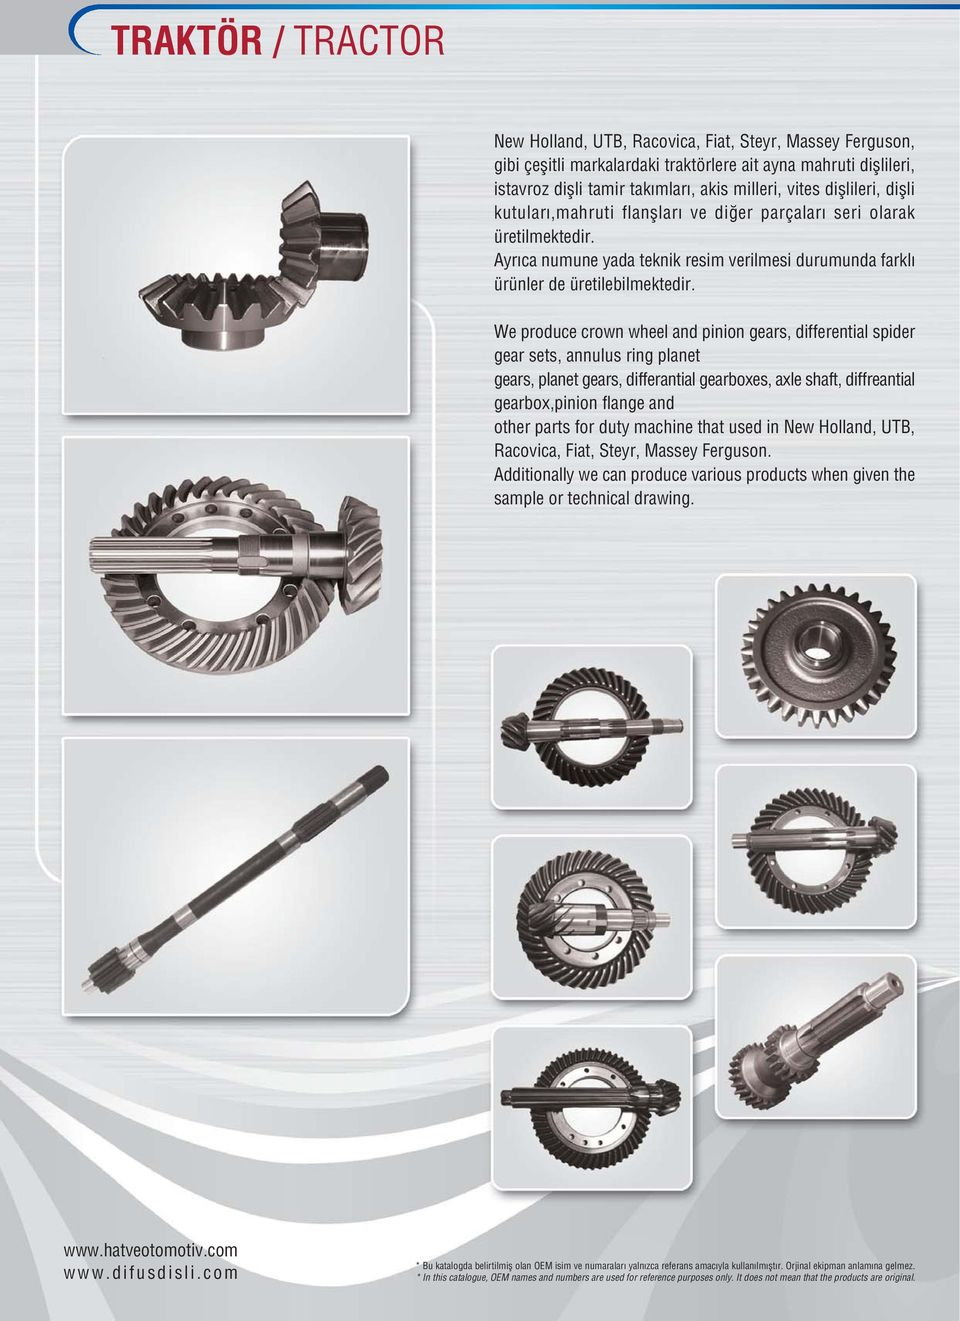 We produce crown wheel and pinion gears, differential spider gear sets, annulus ring planet gears, planet gears, differantial gearboxes, axle shaft, diffreantial gearbox,pinion flange and